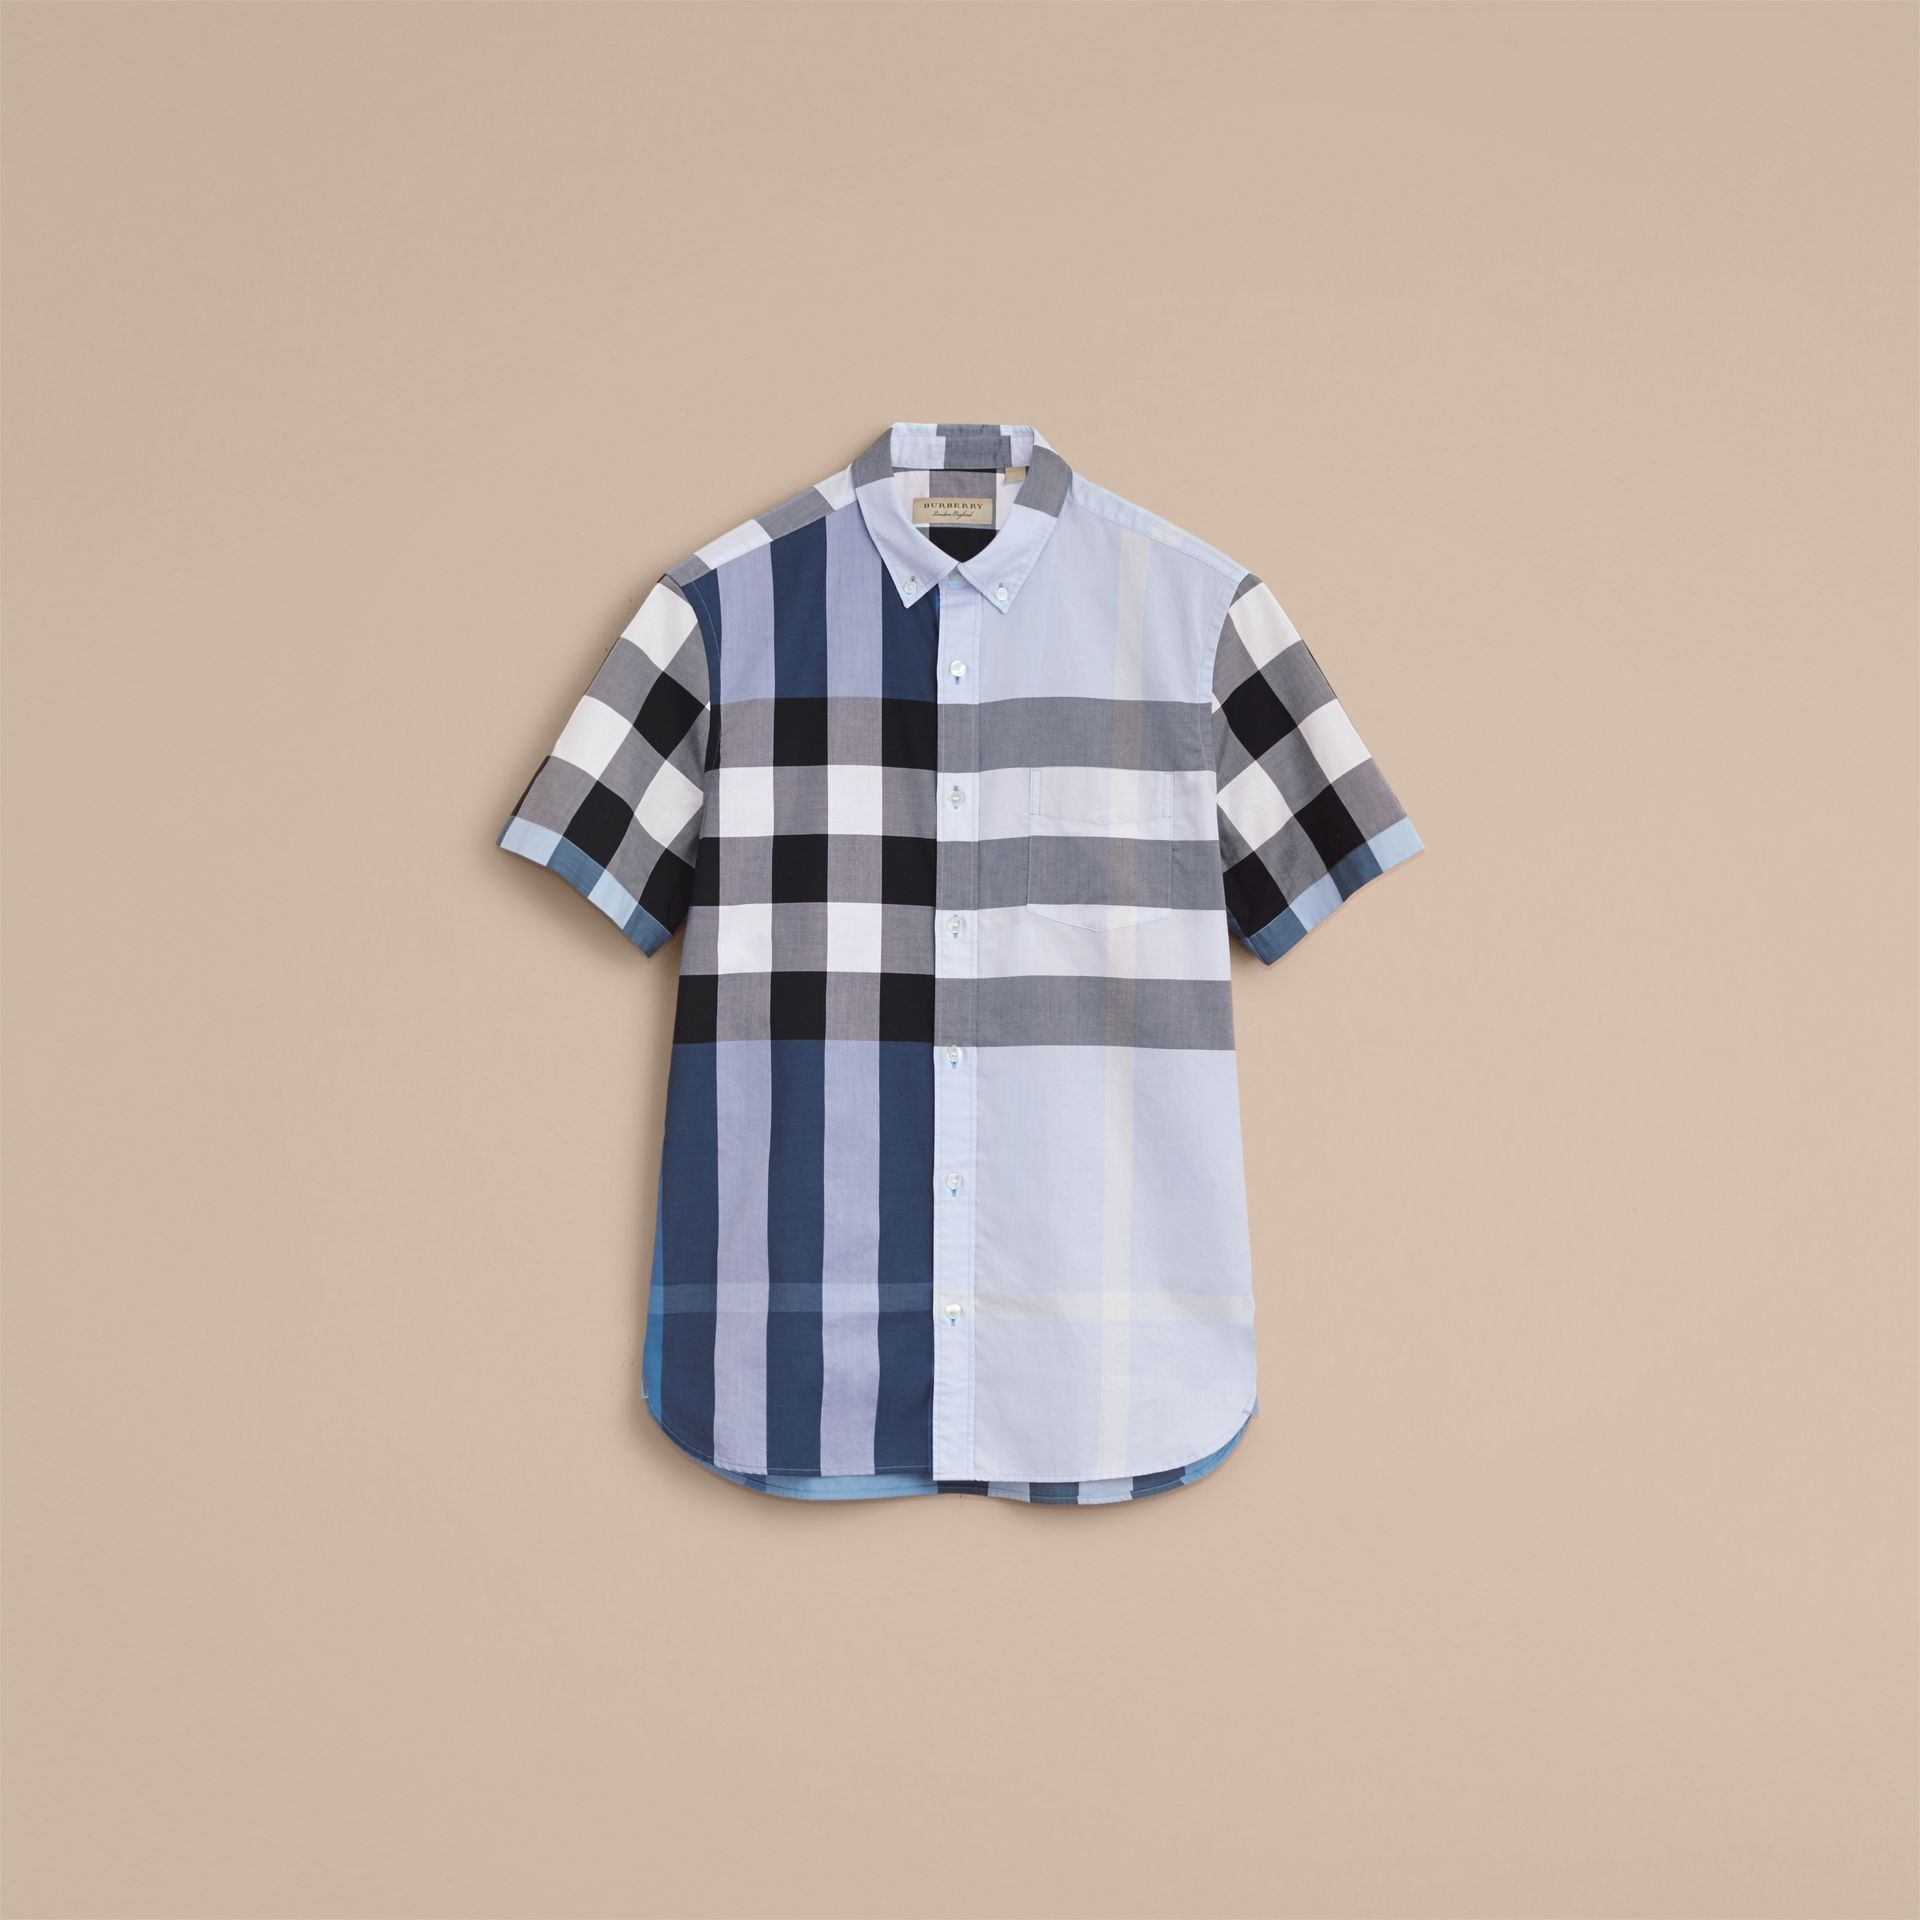 Button-down Collar Short-sleeve Check Cotton Shirt in Lupin Blue - Men | Burberry - gallery image 4